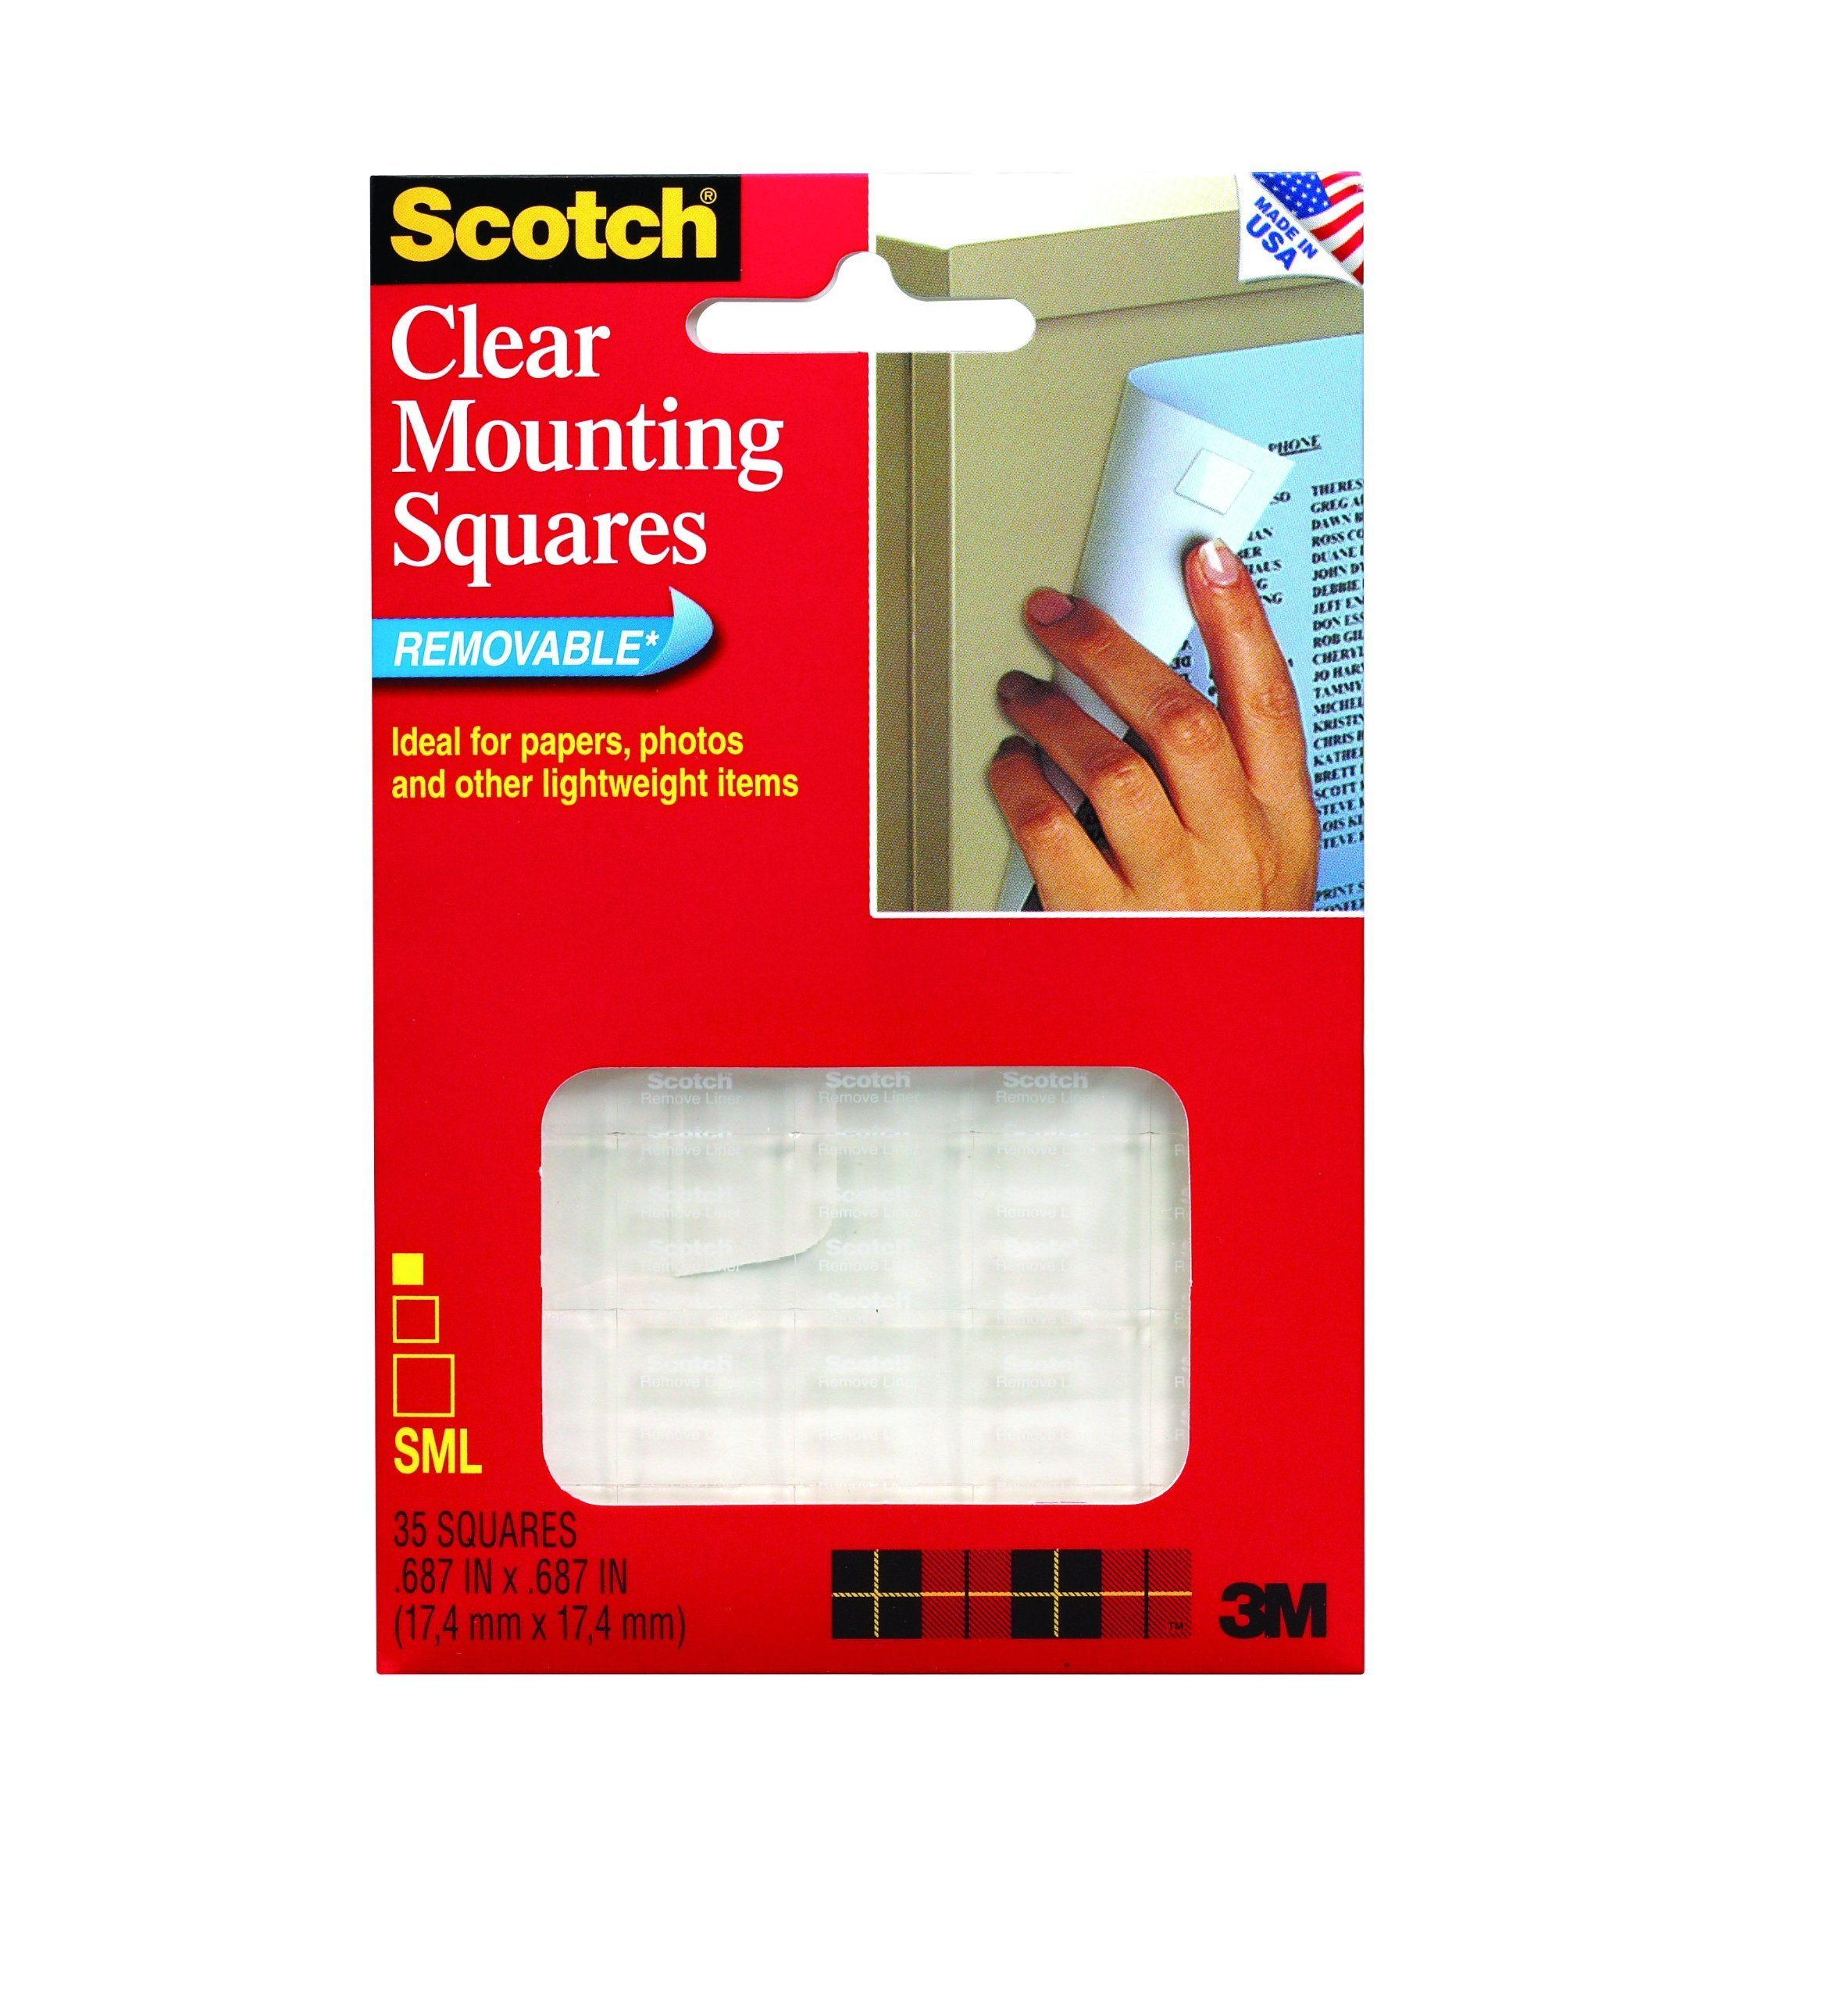 Scotch 859 Mounting Squares, Precut, Removable, 11/16-Inch x 11/16-Inch, Clear, 35 per Pack (MMM859)